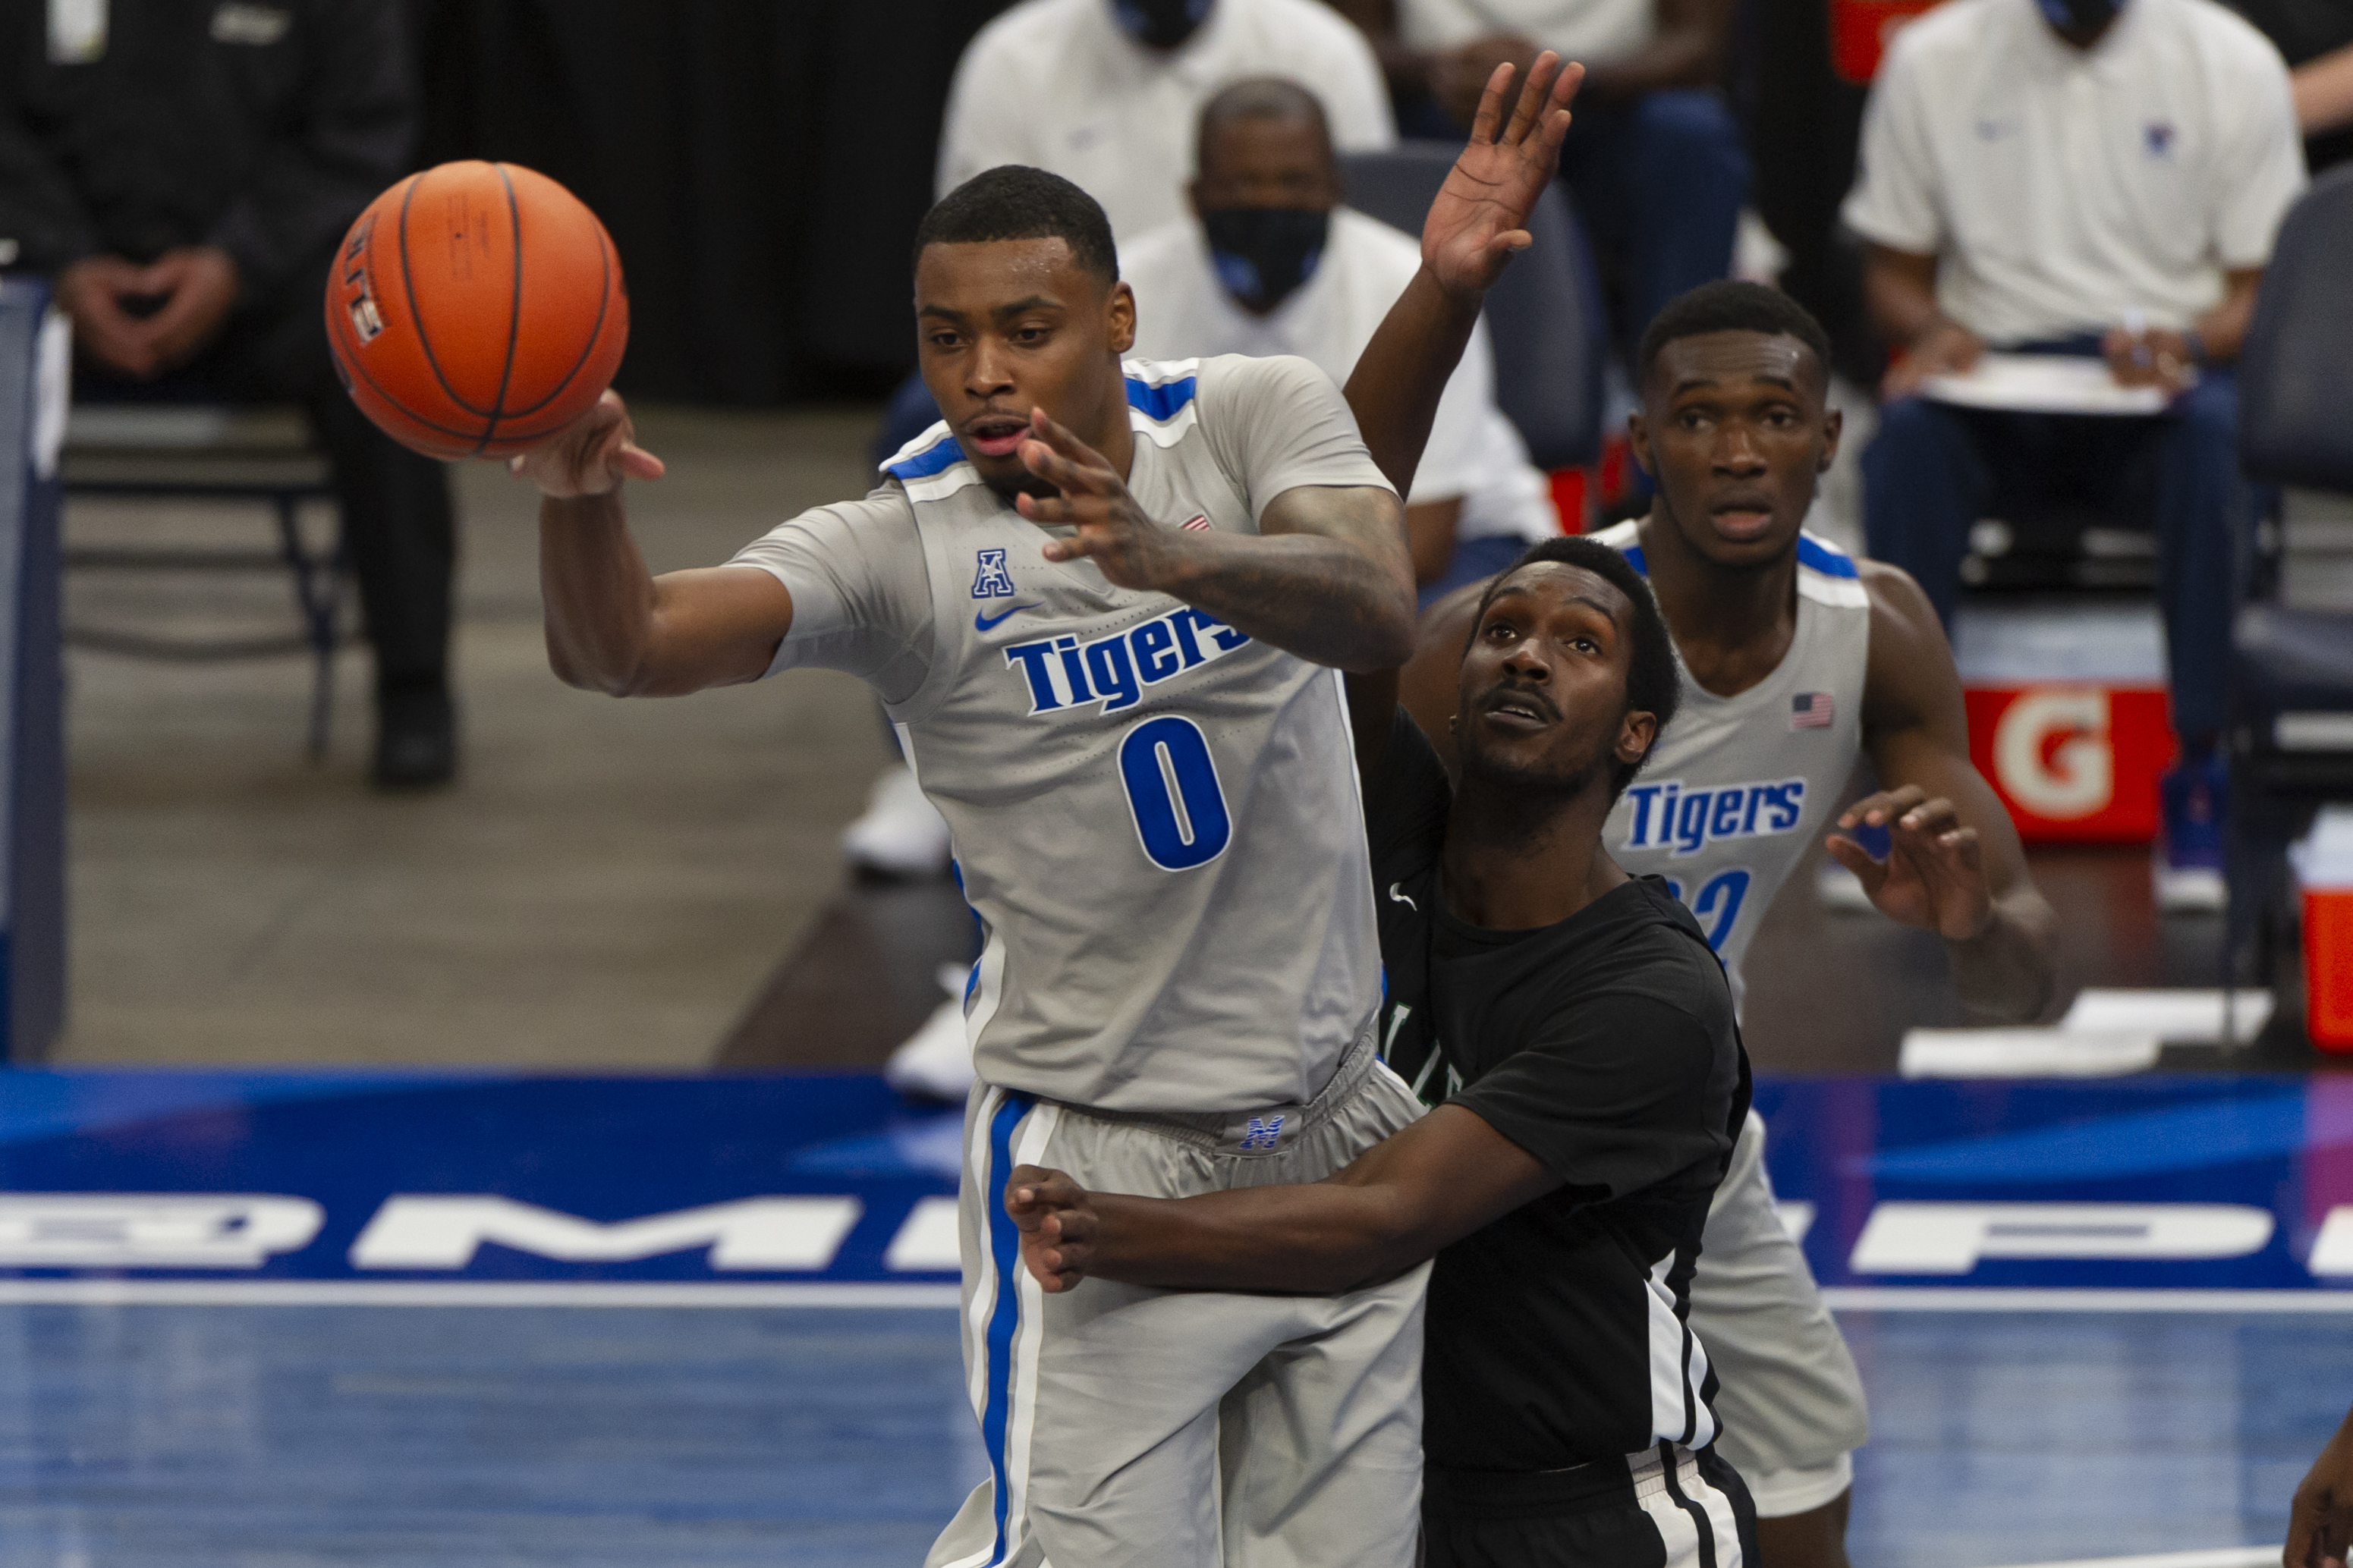 NCAA Basketball: Mississippi Valley State at Memphis